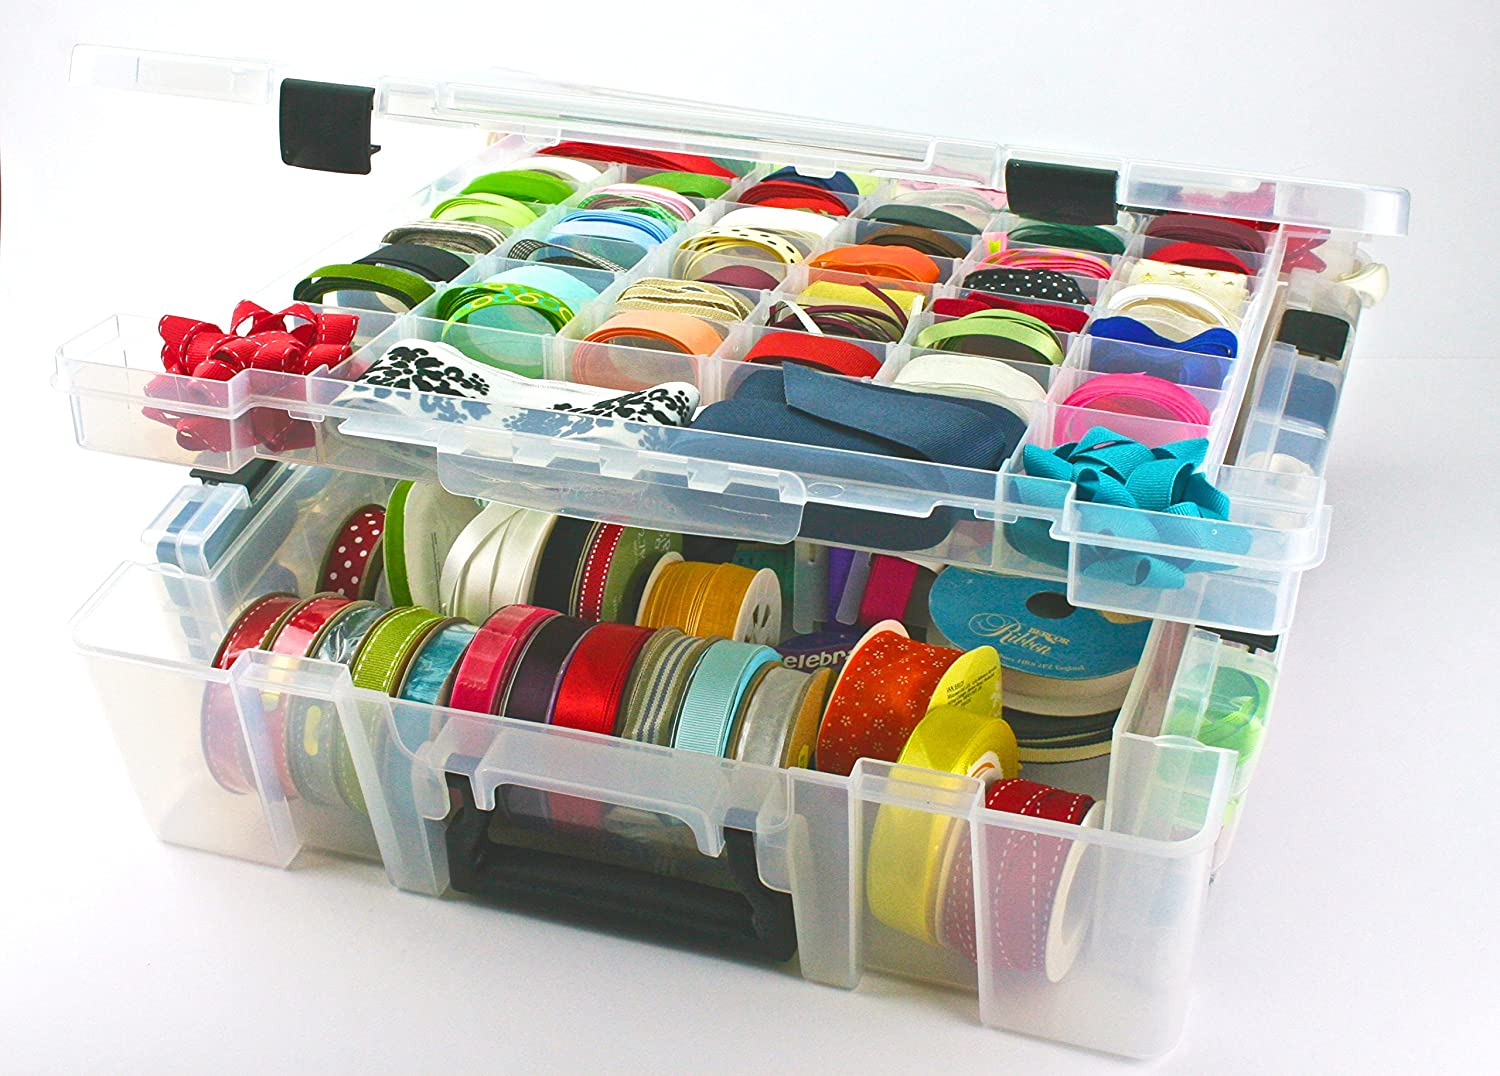 KABOODLE PLUS, CLEAR STORAGE BOX REMOVABLE DIVIDERS, DIVIDED TRAY IN LID,  DEEP INTERNAL COMPARTMENT, ARTS CRAFT STORAGE, SEWING BOX: Amazon.co.uk:  Kitchen U0026 ...